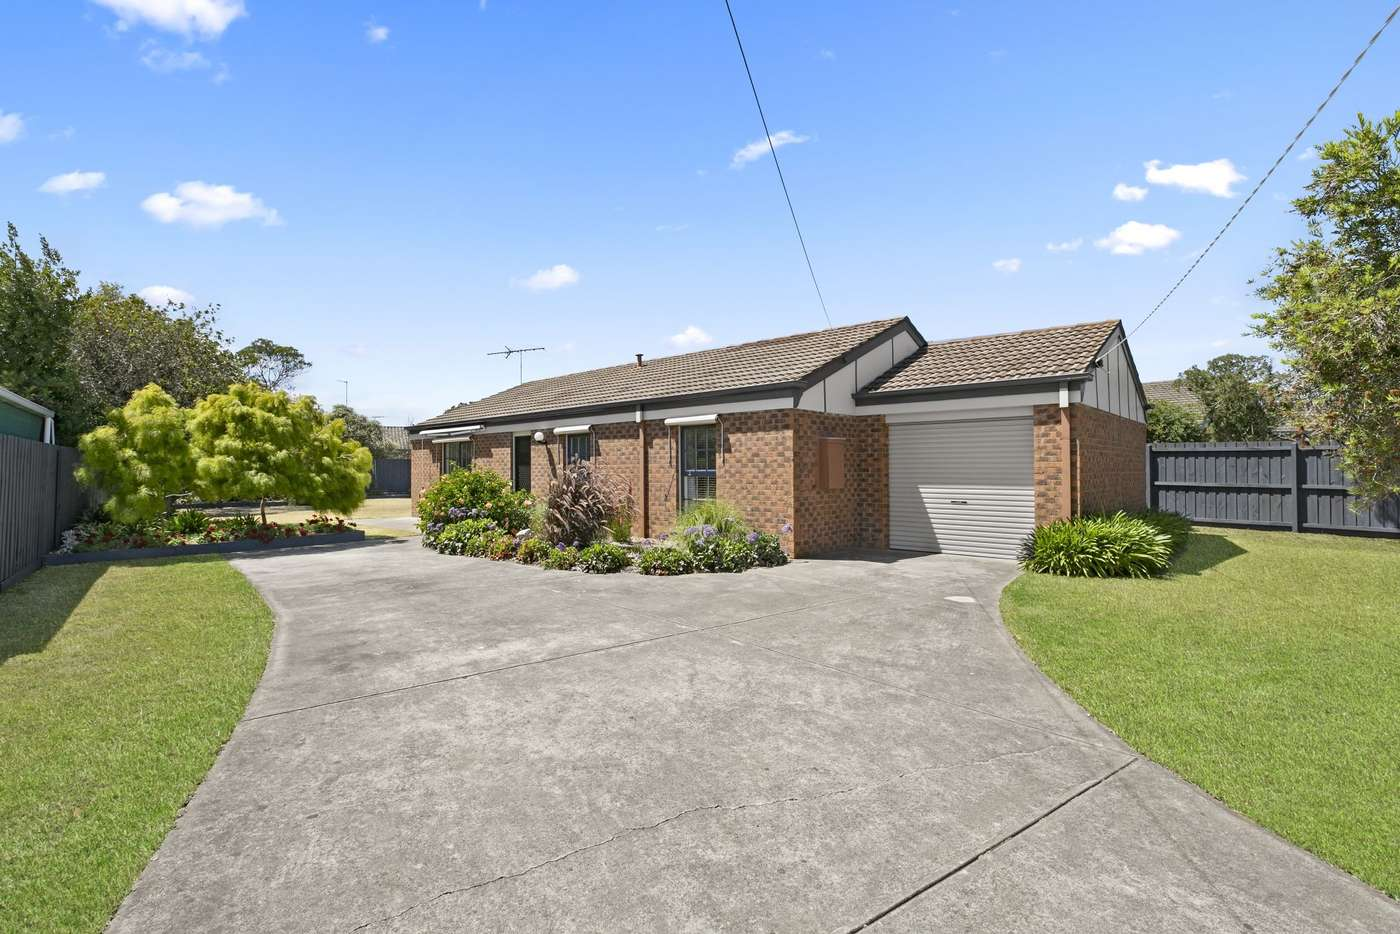 Main view of Homely house listing, 3 Butters Lane, Ocean Grove VIC 3226